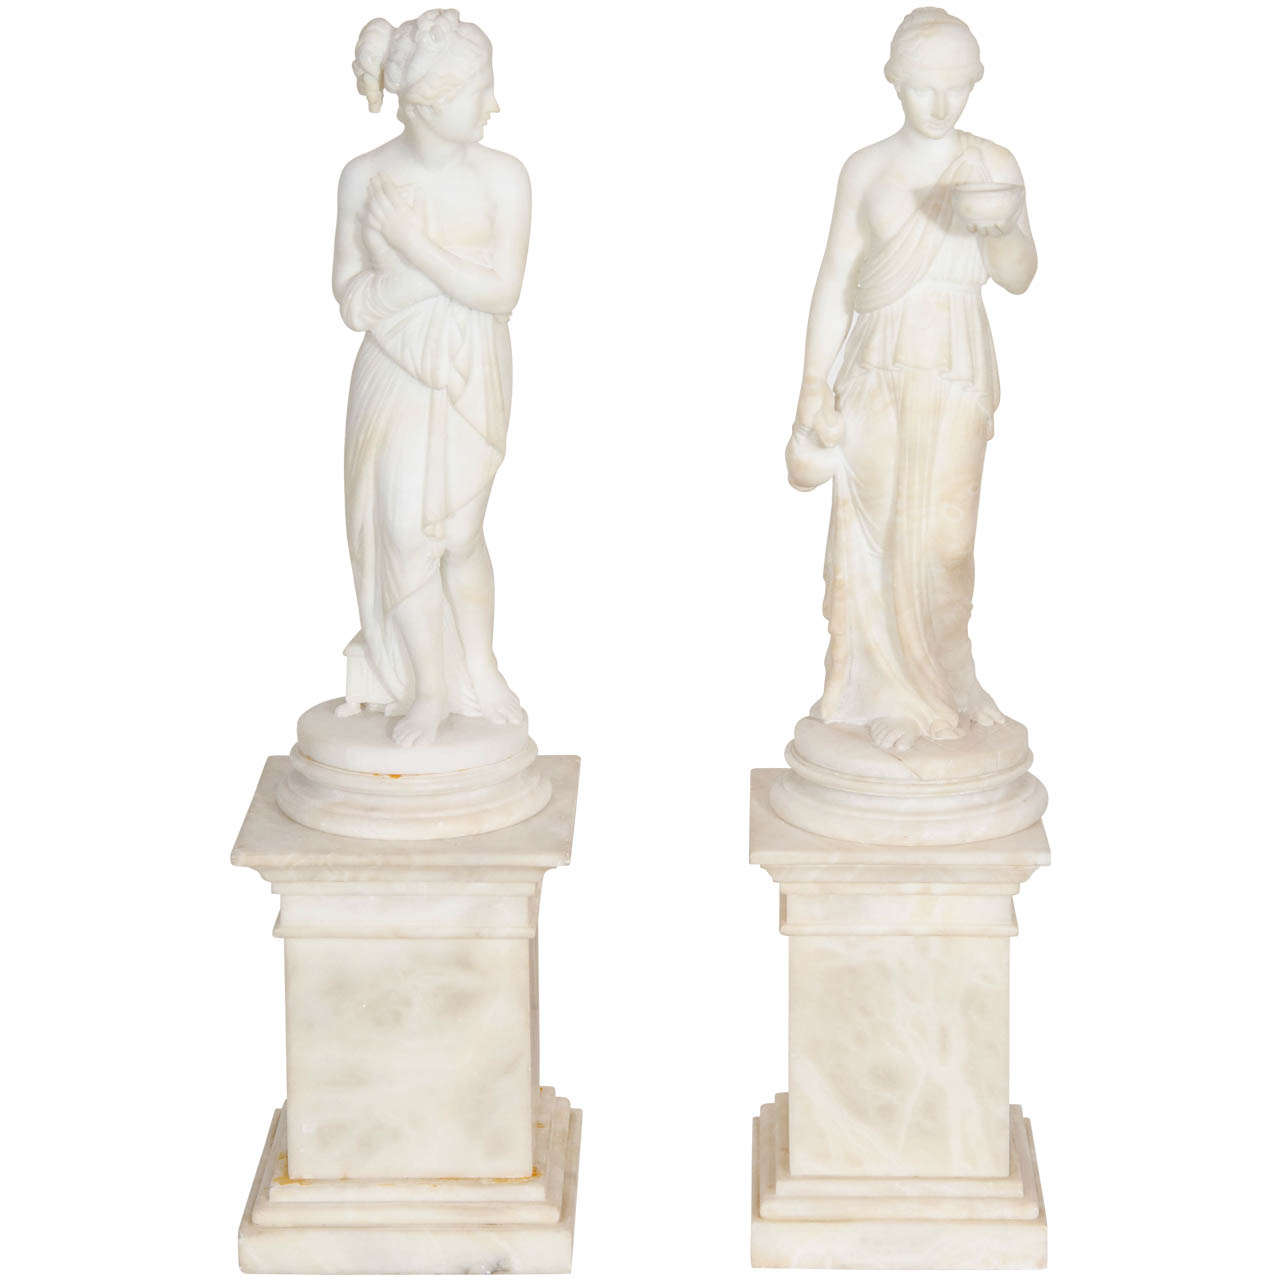 Pair of Antique Italian Neoclassical Alabaster Figures on Bases For Sale